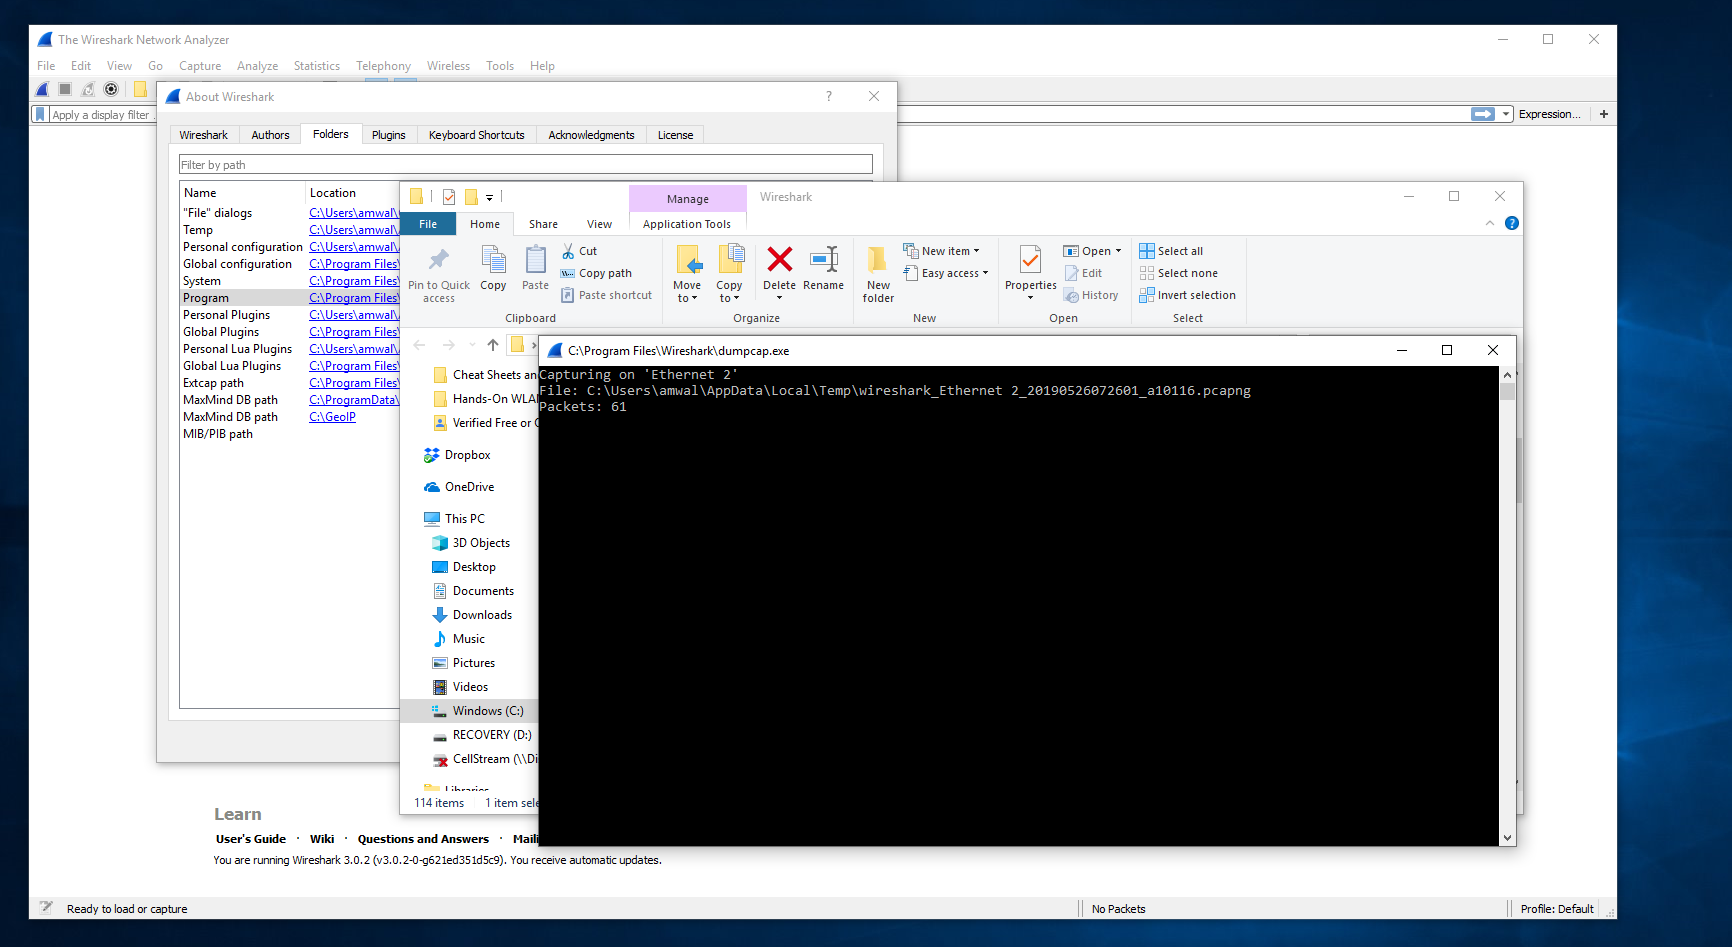 CellStream - How To Use 'dumpcap' Natively on your Computer